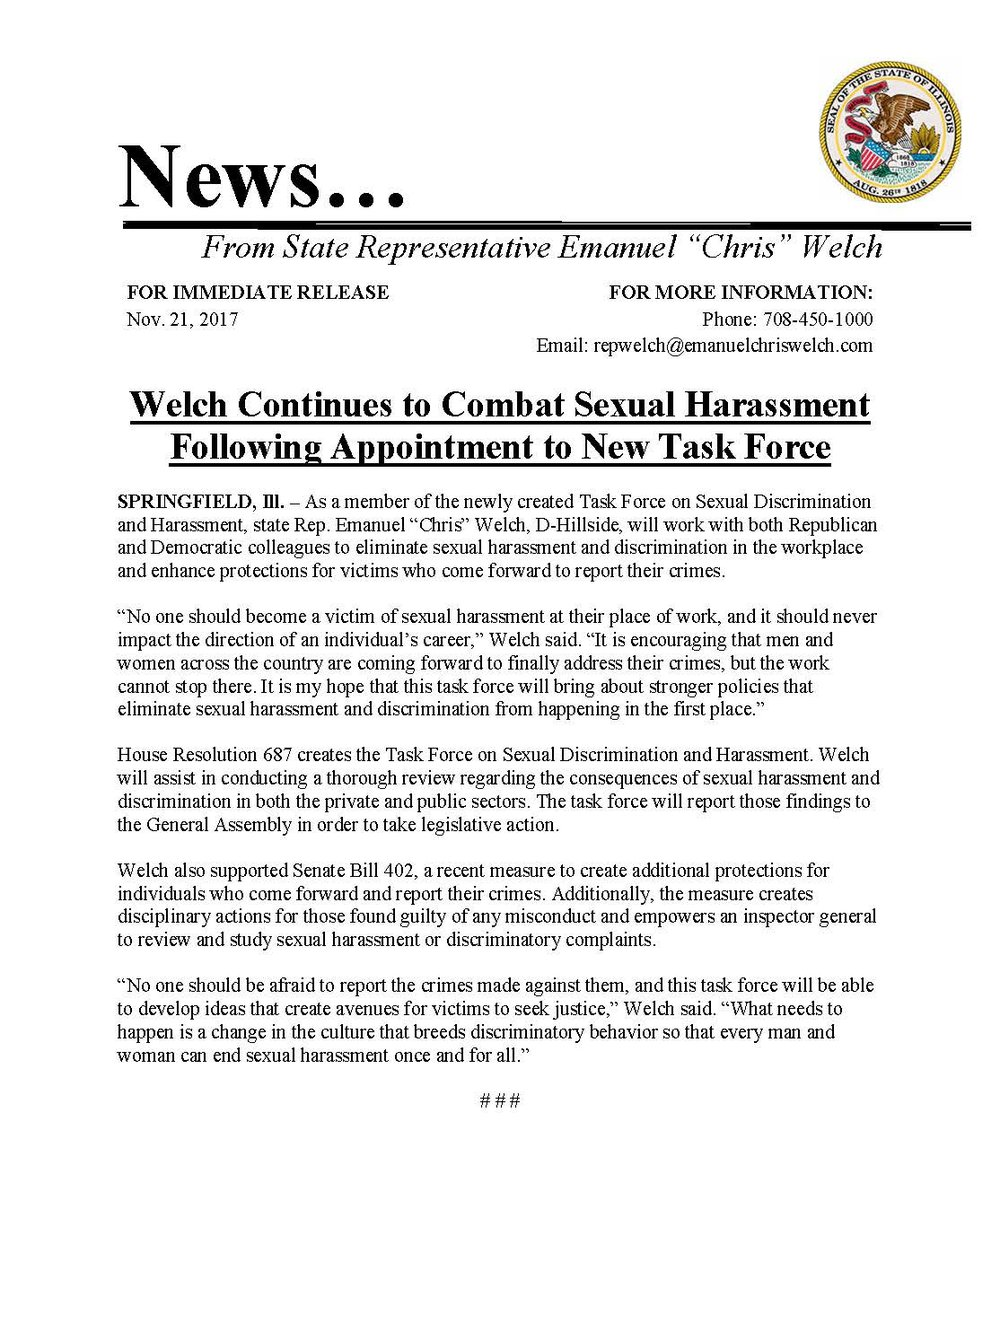 Welch Continues to Combat Sexual Harassment  (November 21, 2017)